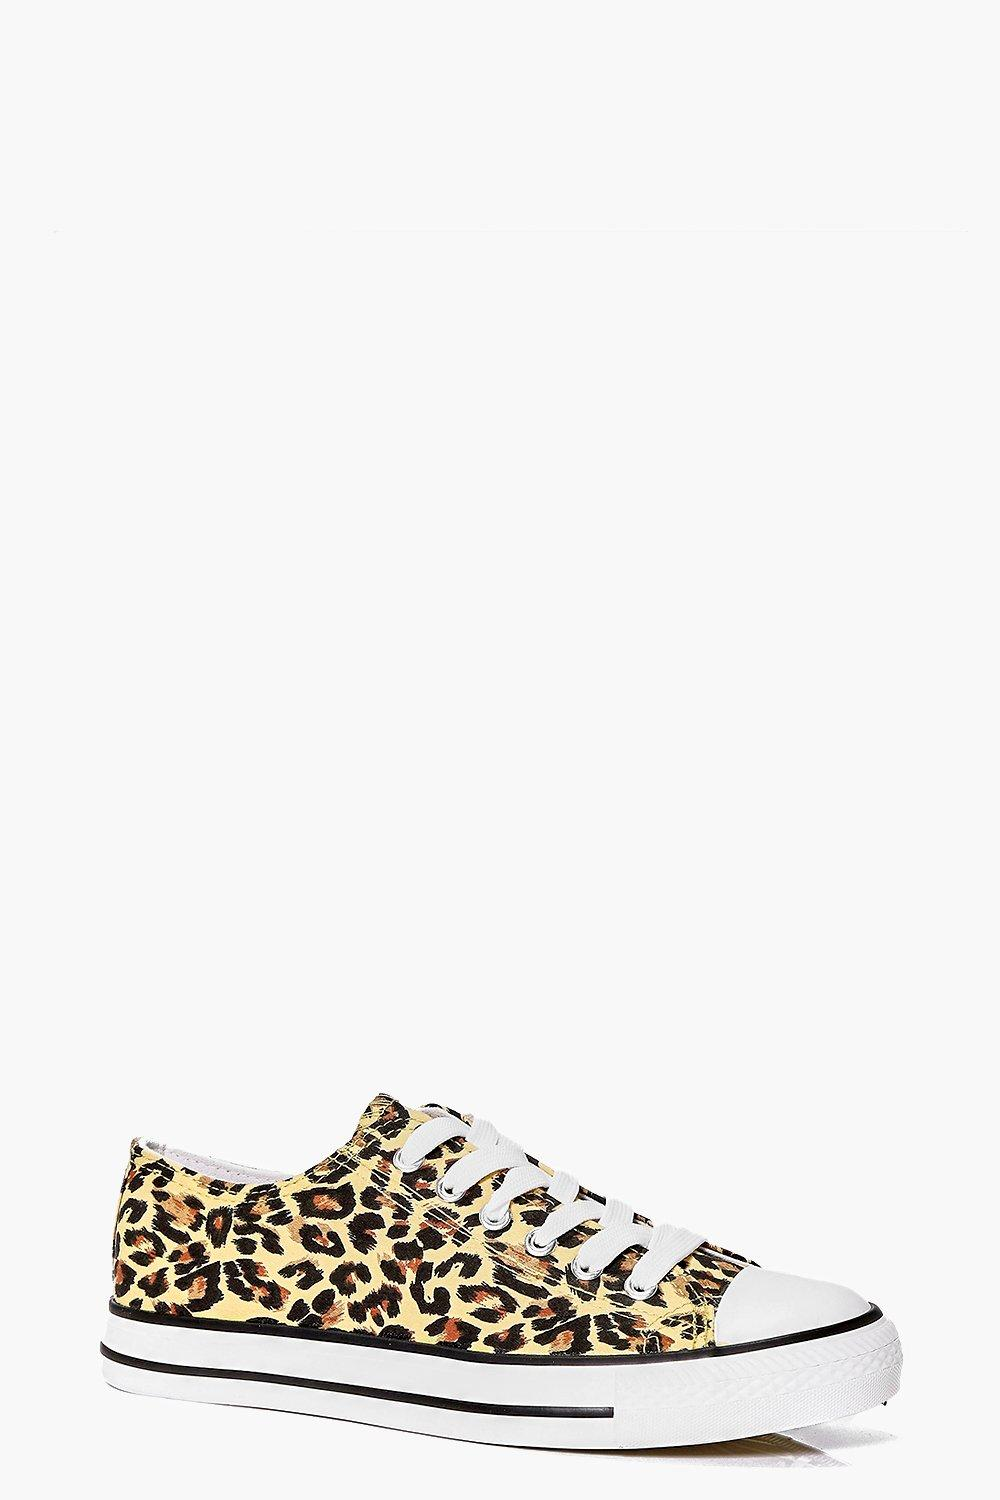 640b38578e Imogen Leopard Print Lace Up Canvas Flat. Hover to zoom